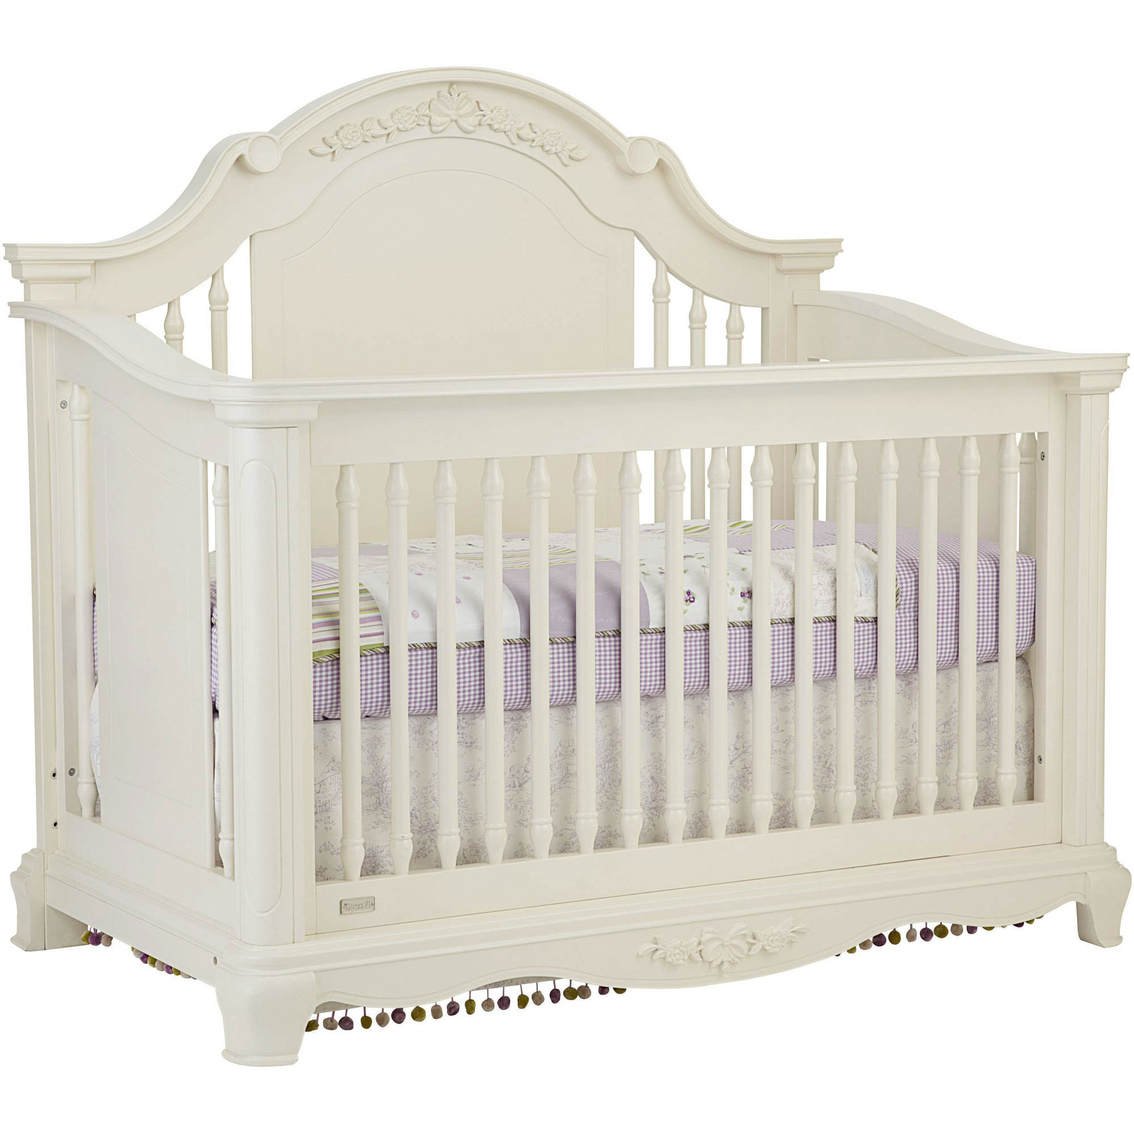 Bassett addison 4-in-1 stationary crib | cribs | baby & toys.